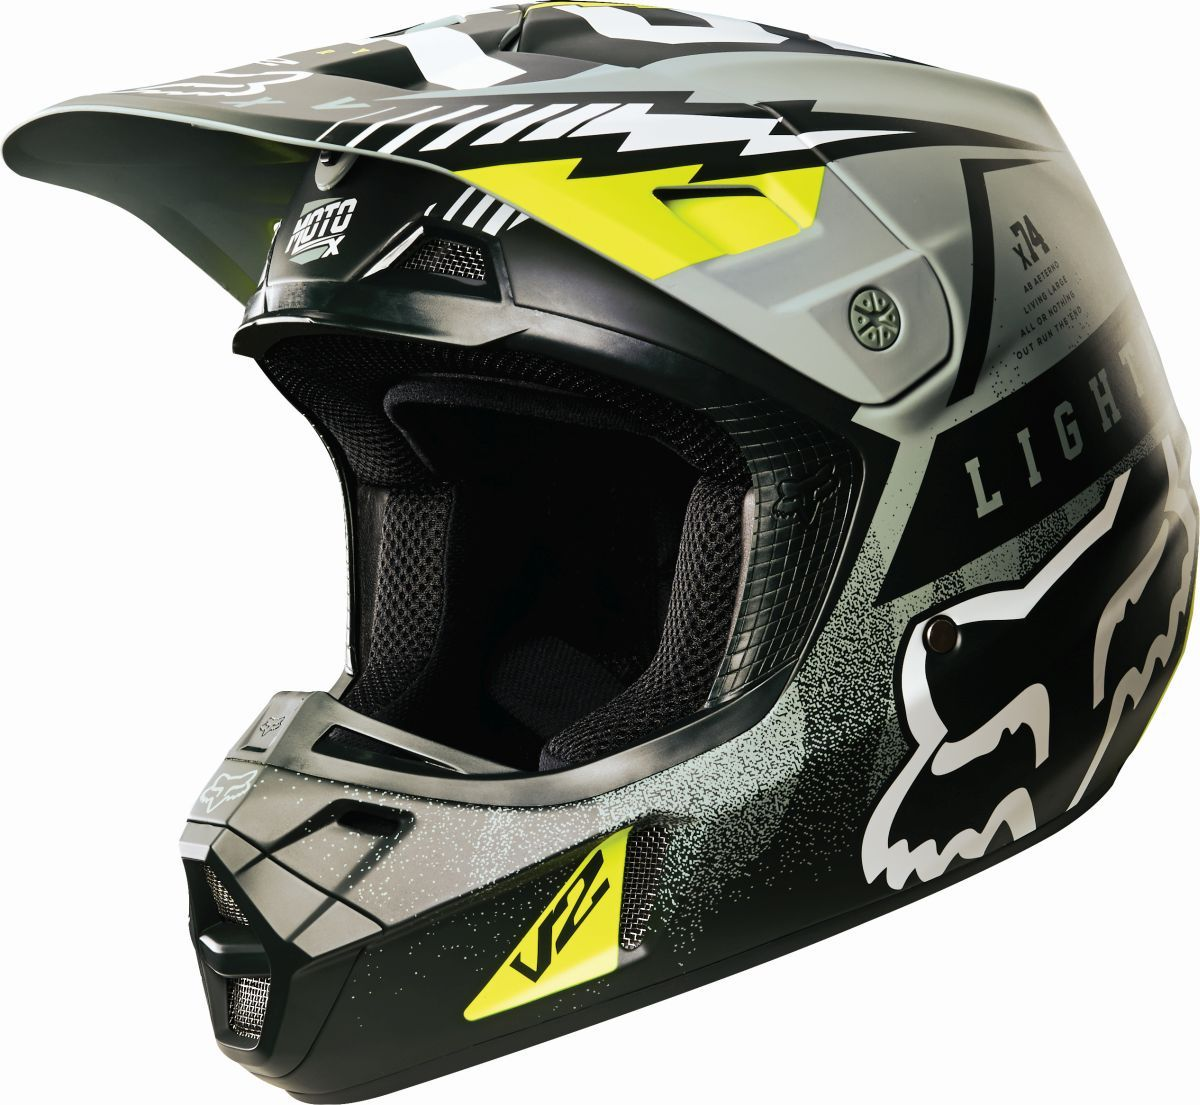 ... NEW 2016 Mx V2 Vicious Army Green Grey MTB Motocross Dirt Bike Helmet